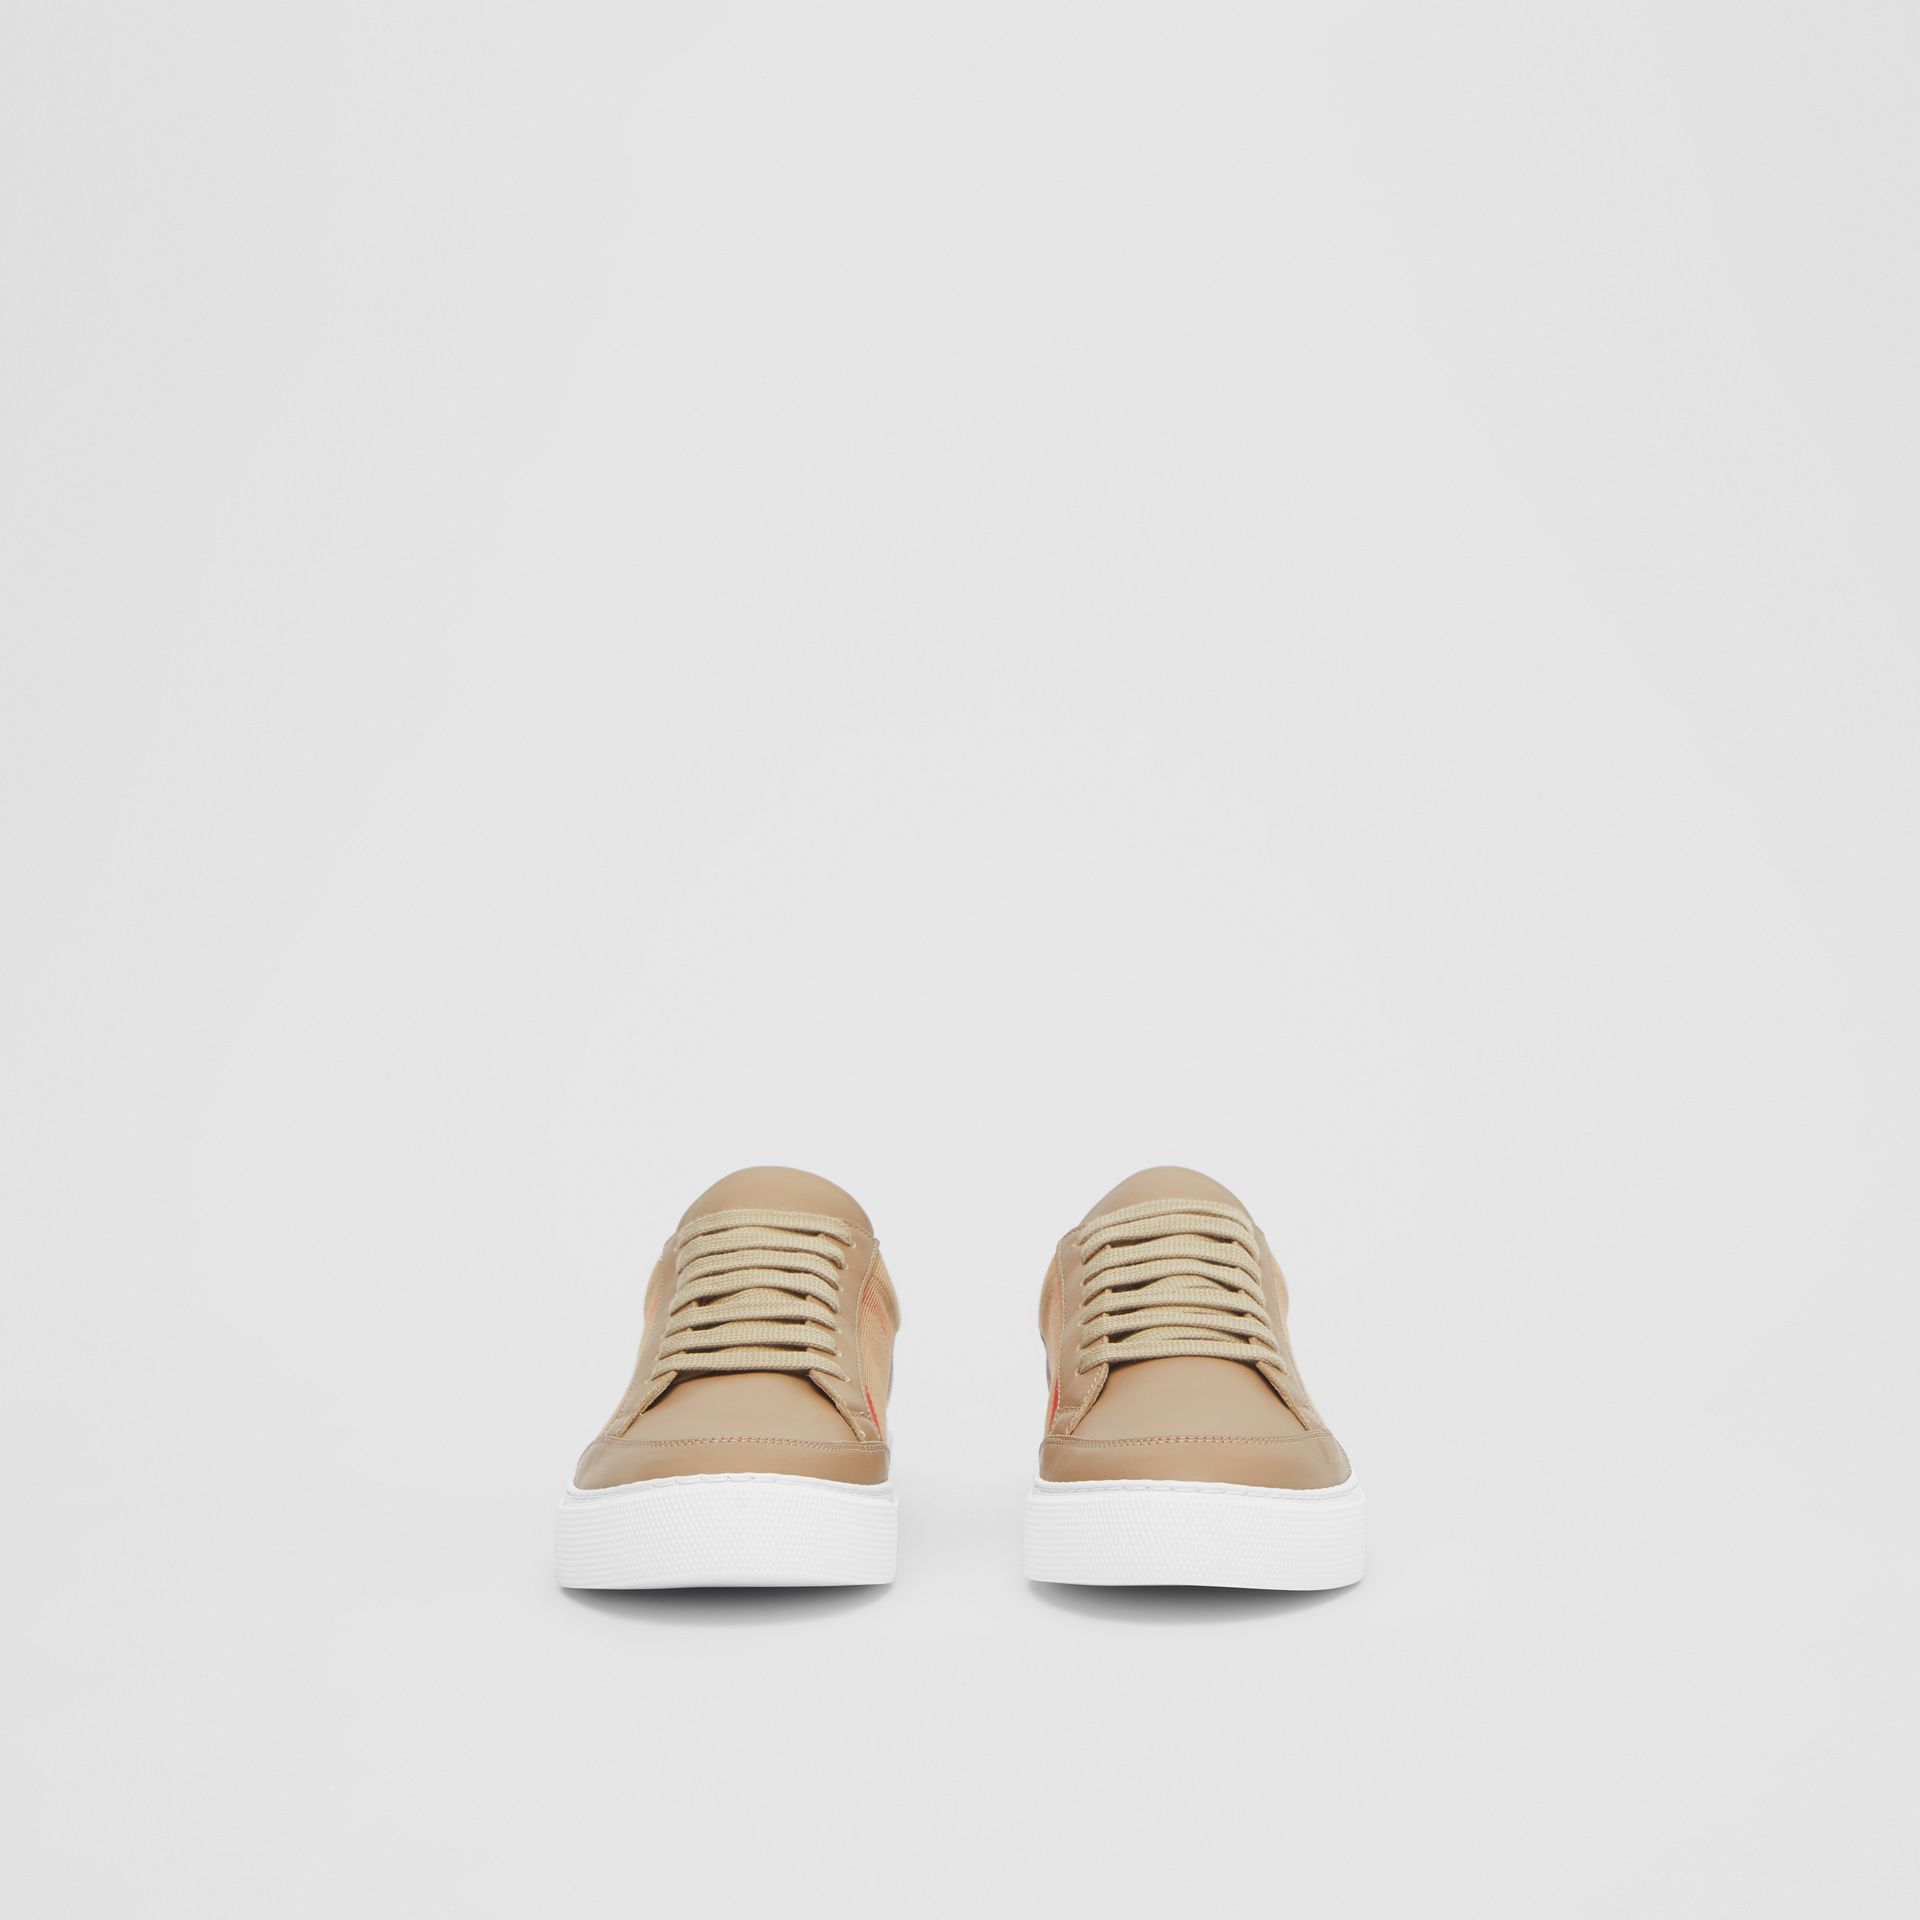 House Check and Leather Sneakers in Tan - Women | Burberry - gallery image 3